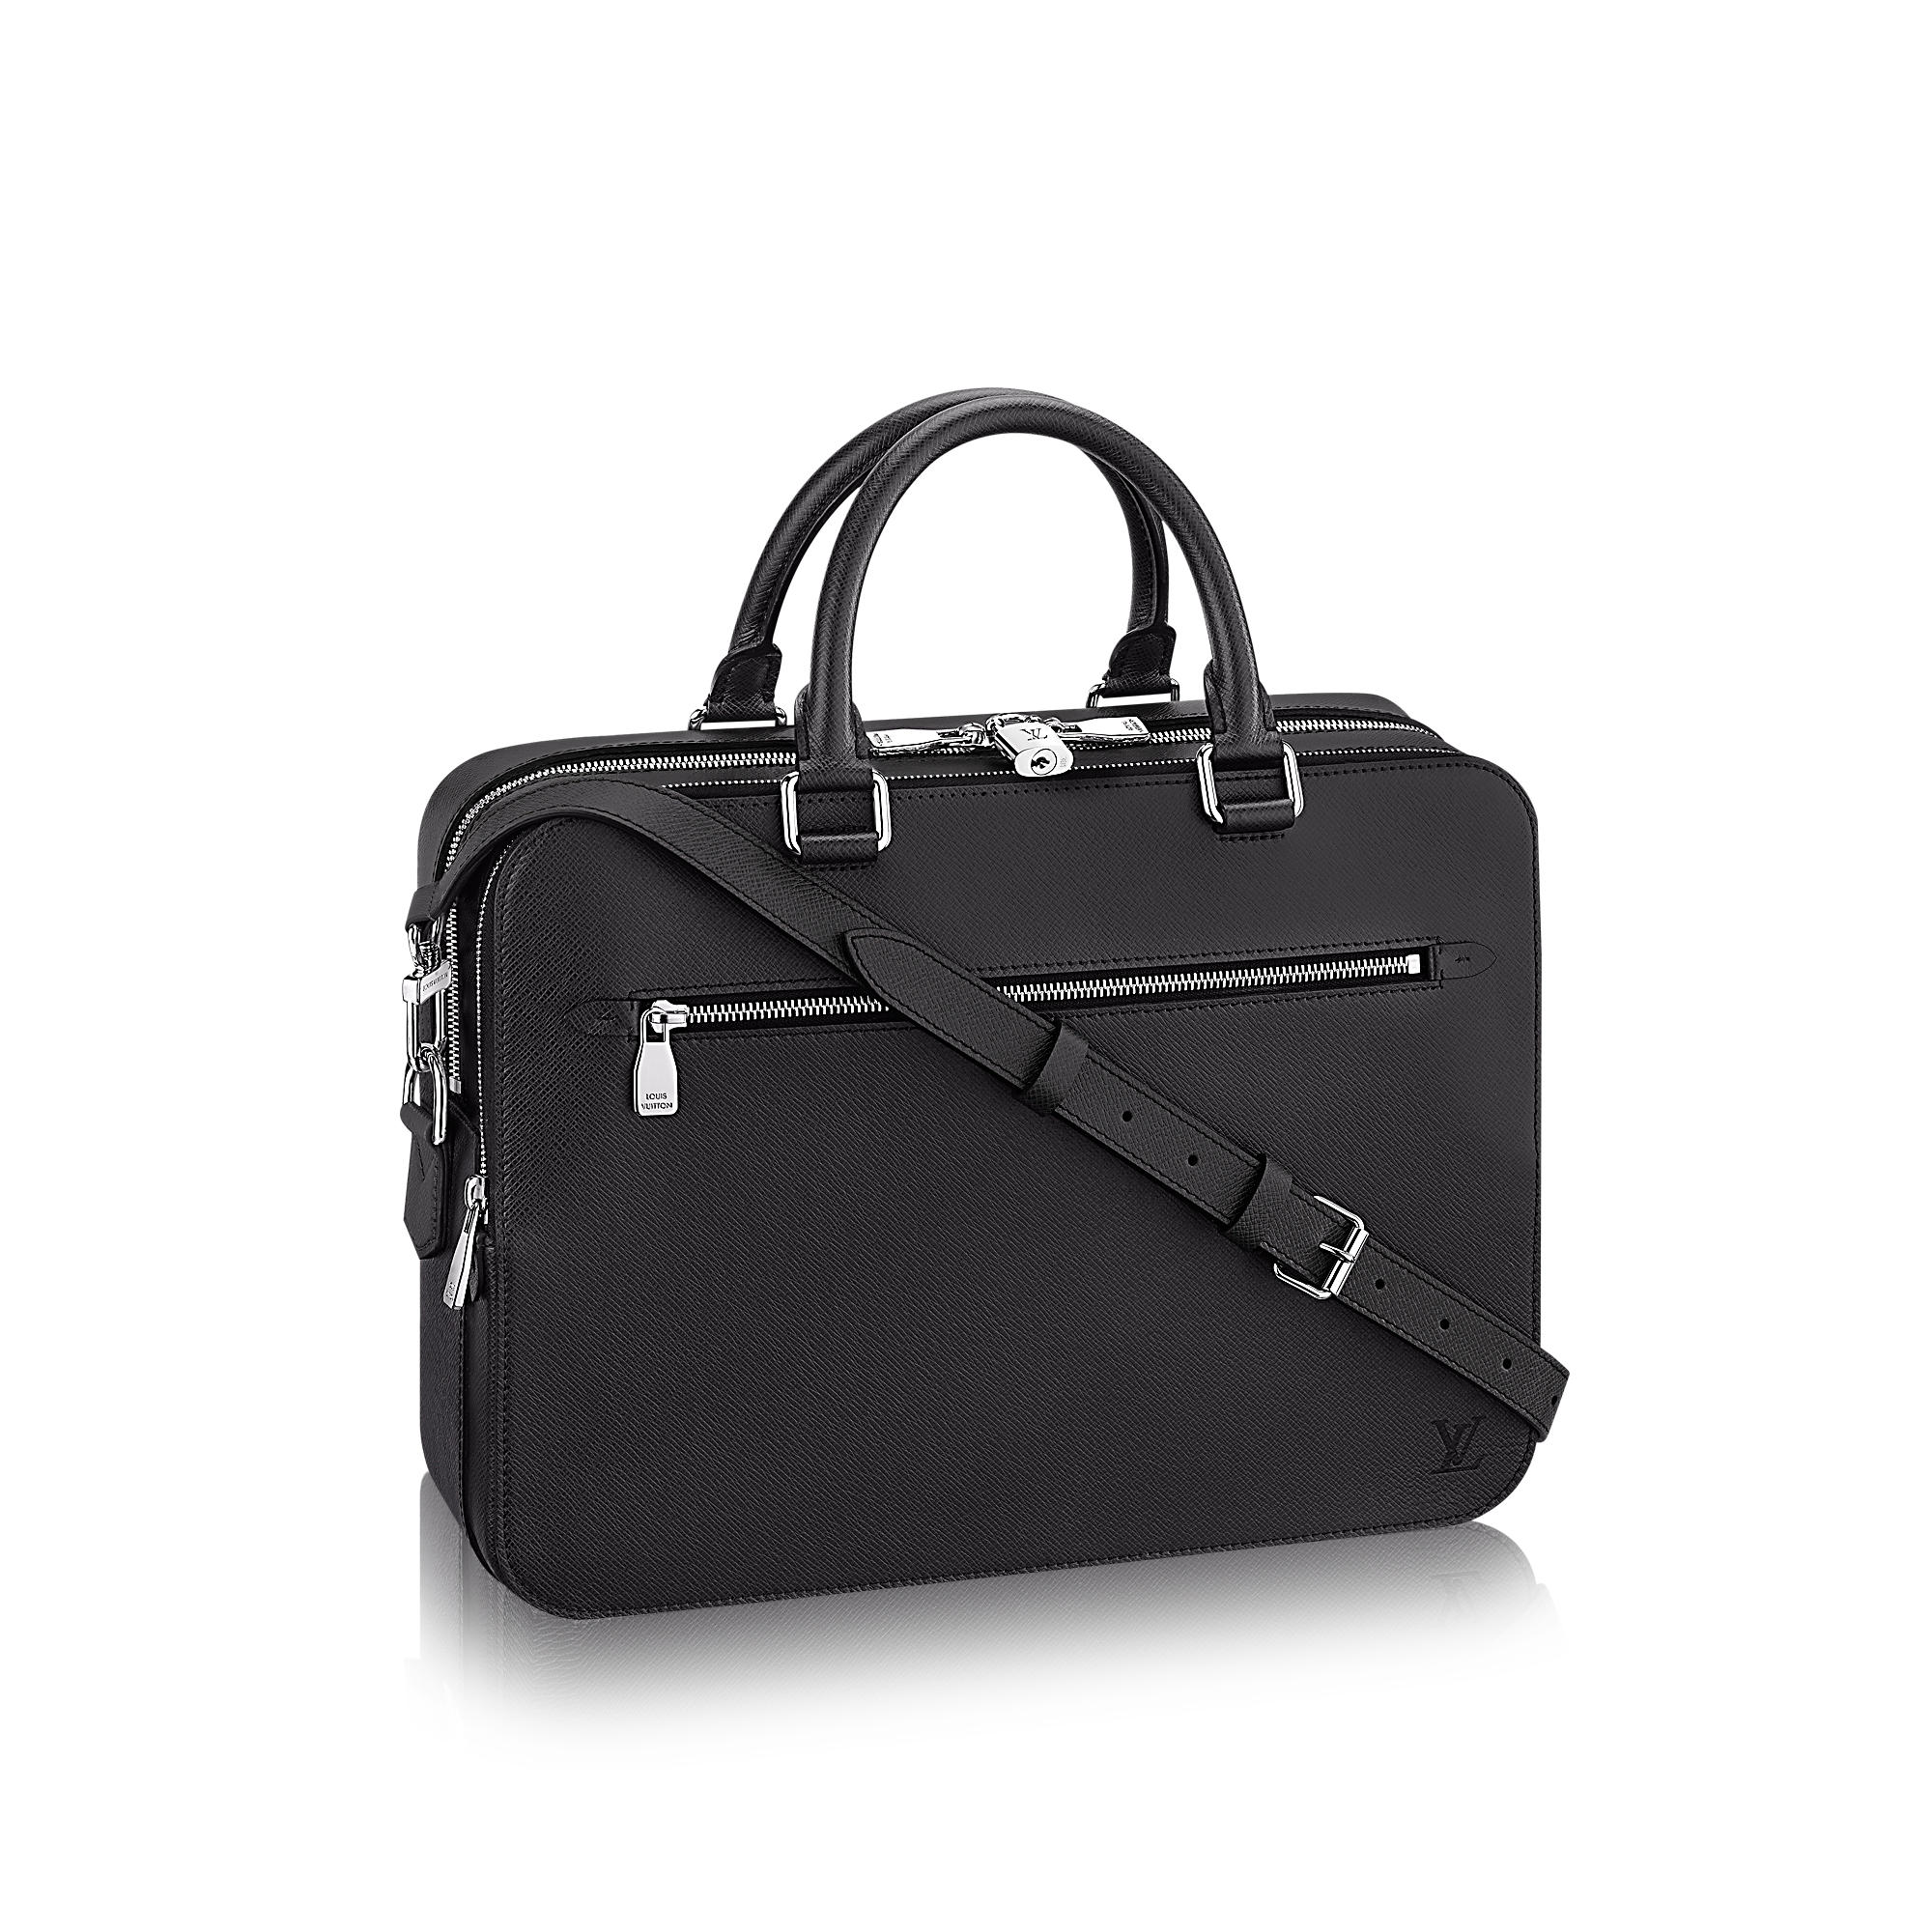 mens bags porte-documents organizer MTSYXDV